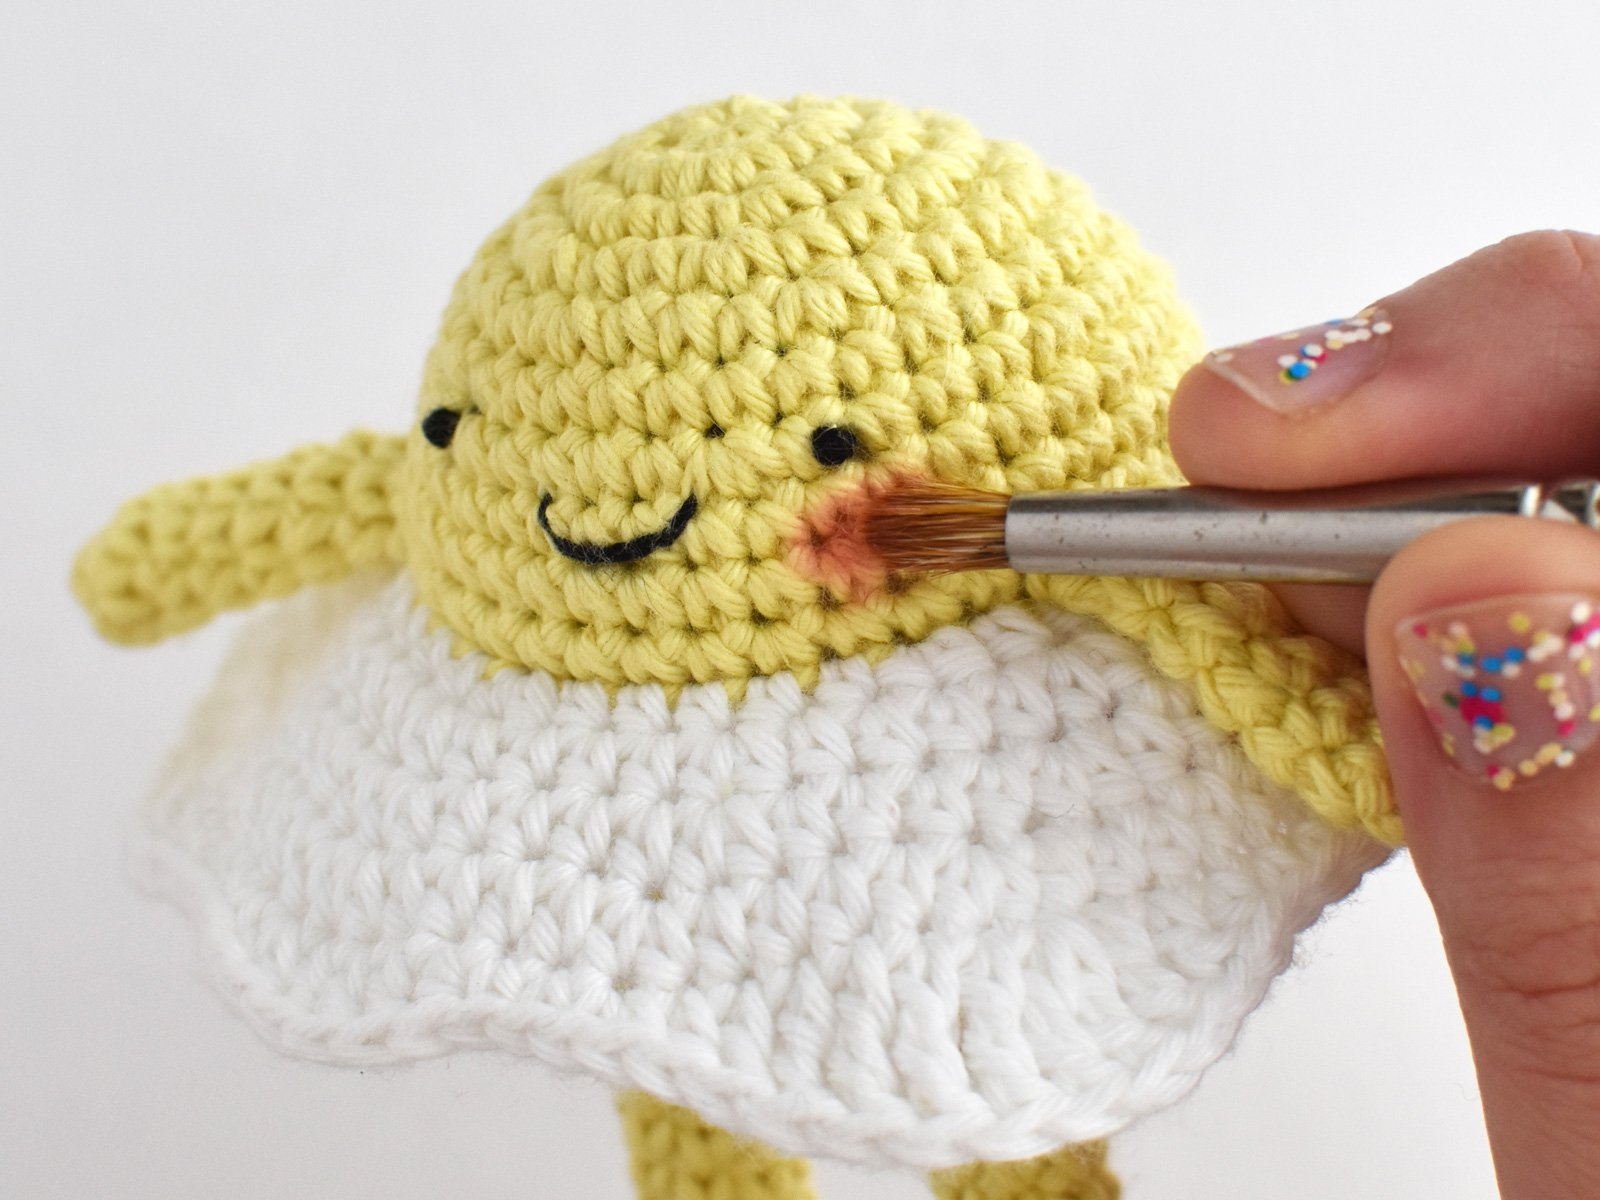 Close-up showing how to apply blush to the crochet egg amigurumi.